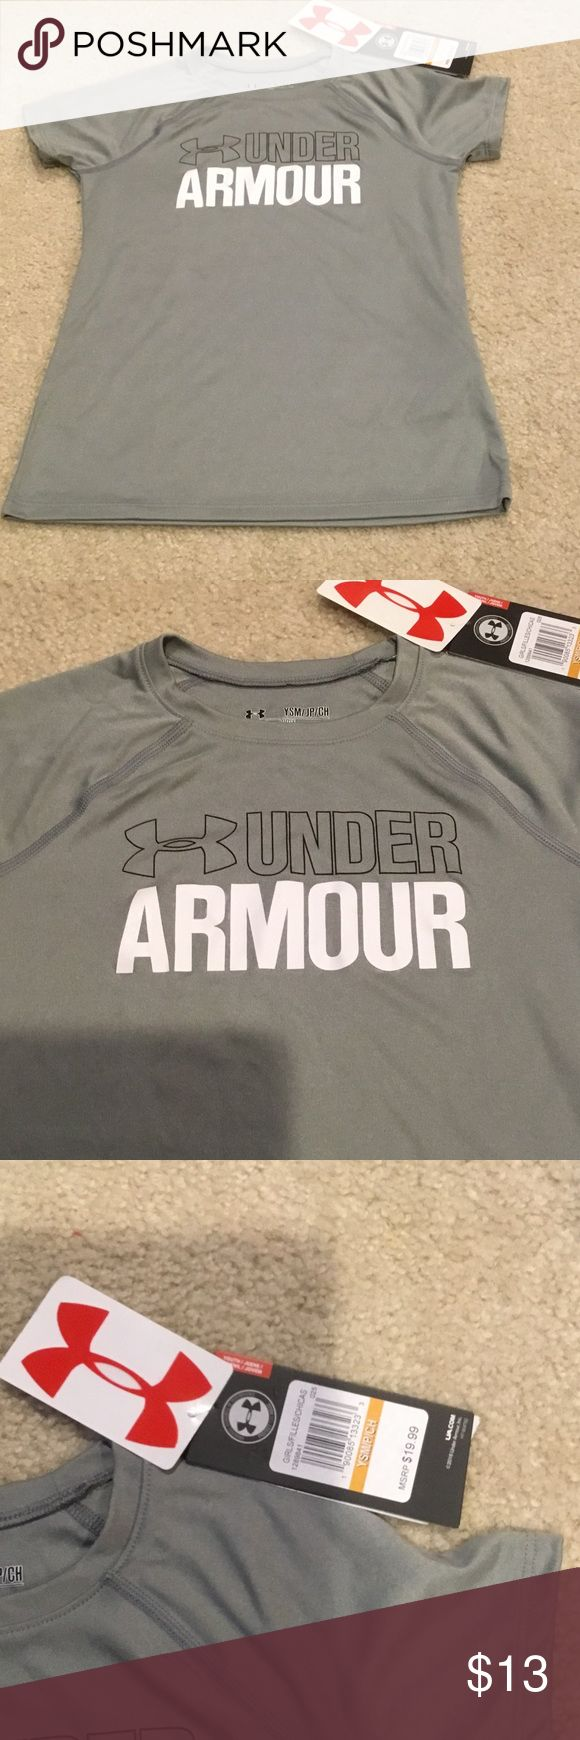 NWT Girls Under Armour Wordmark Tee size Ysm NWT Girls 7-16 Under Armour UA Wordmark Short sleeve tee size Ysm. Crewneck. Moisture transport system wicks sweat and dries fast. Compared to the other two Ysm UA tees I have for sale, this seems to be a little smaller than the others. Under Armour Shirts & Tops Tees - Short Sleeve